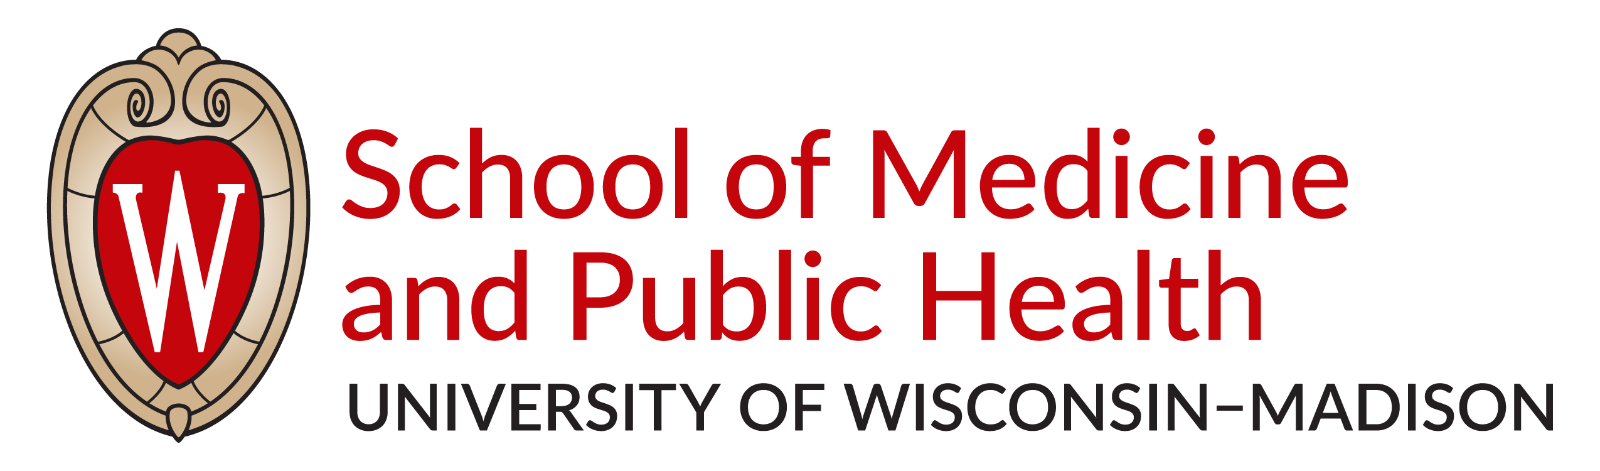 UW-Madison COVID Study Concludes H.S. Athletics Has Not Lead to Increased Infections